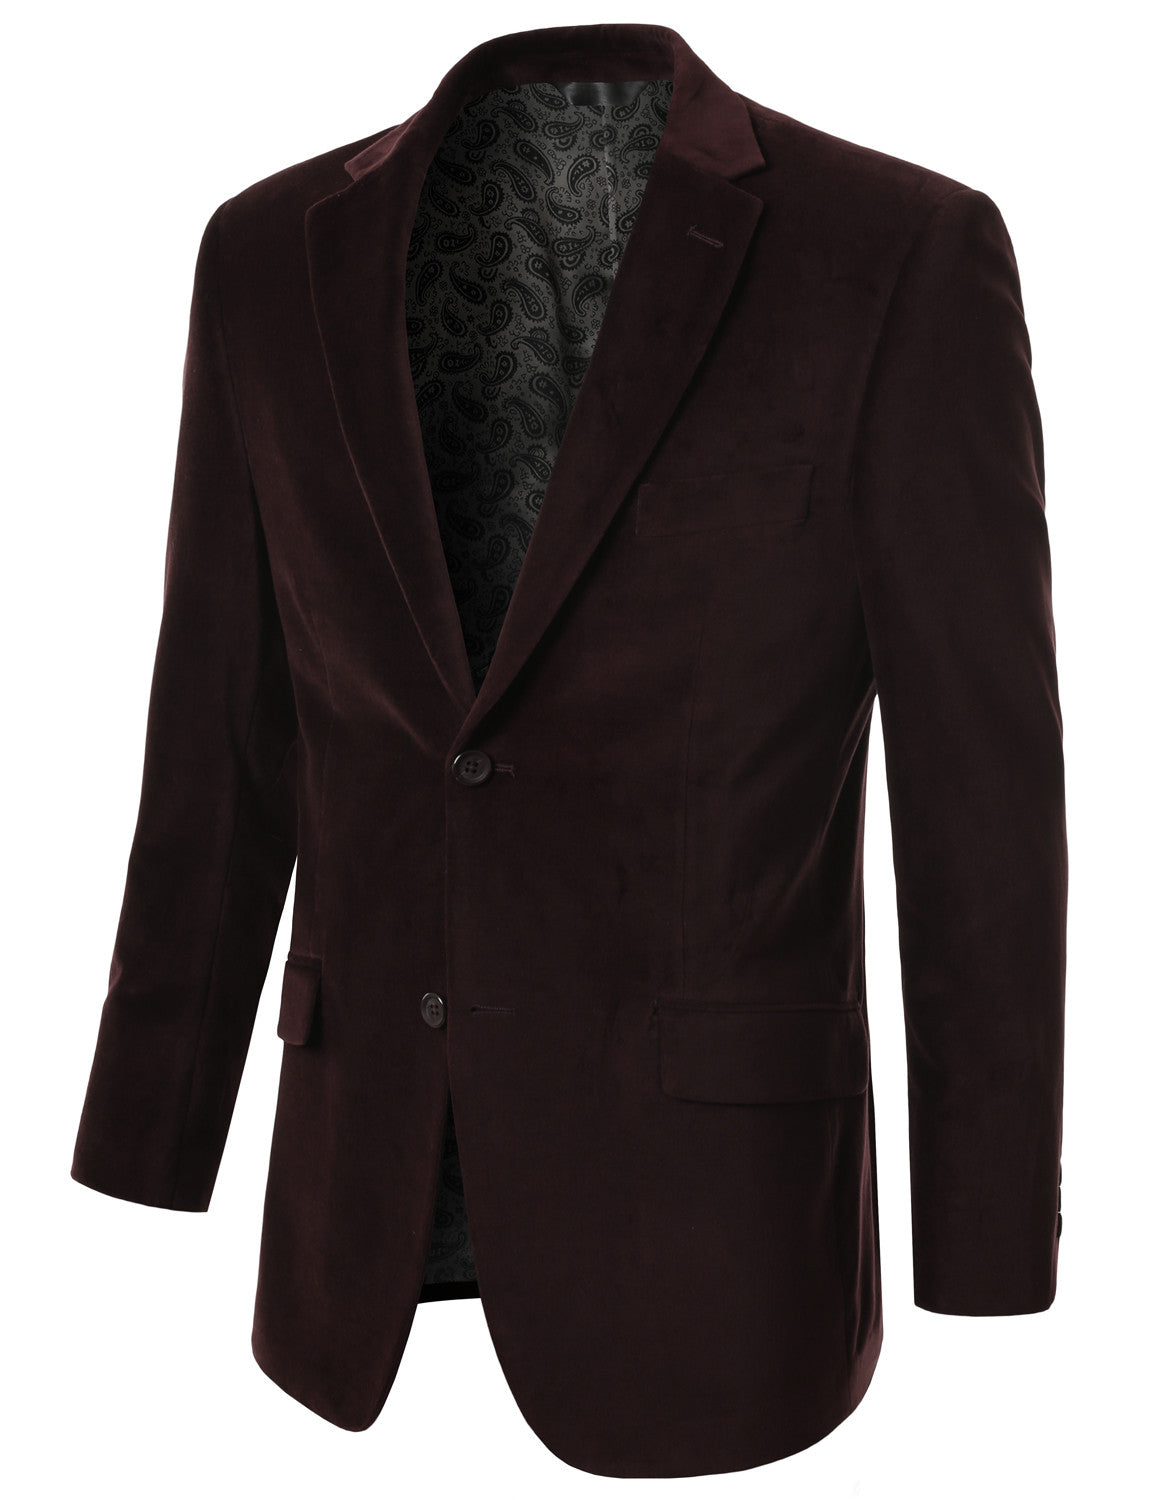 08BROWN Cotton Velvet Sport Blazer